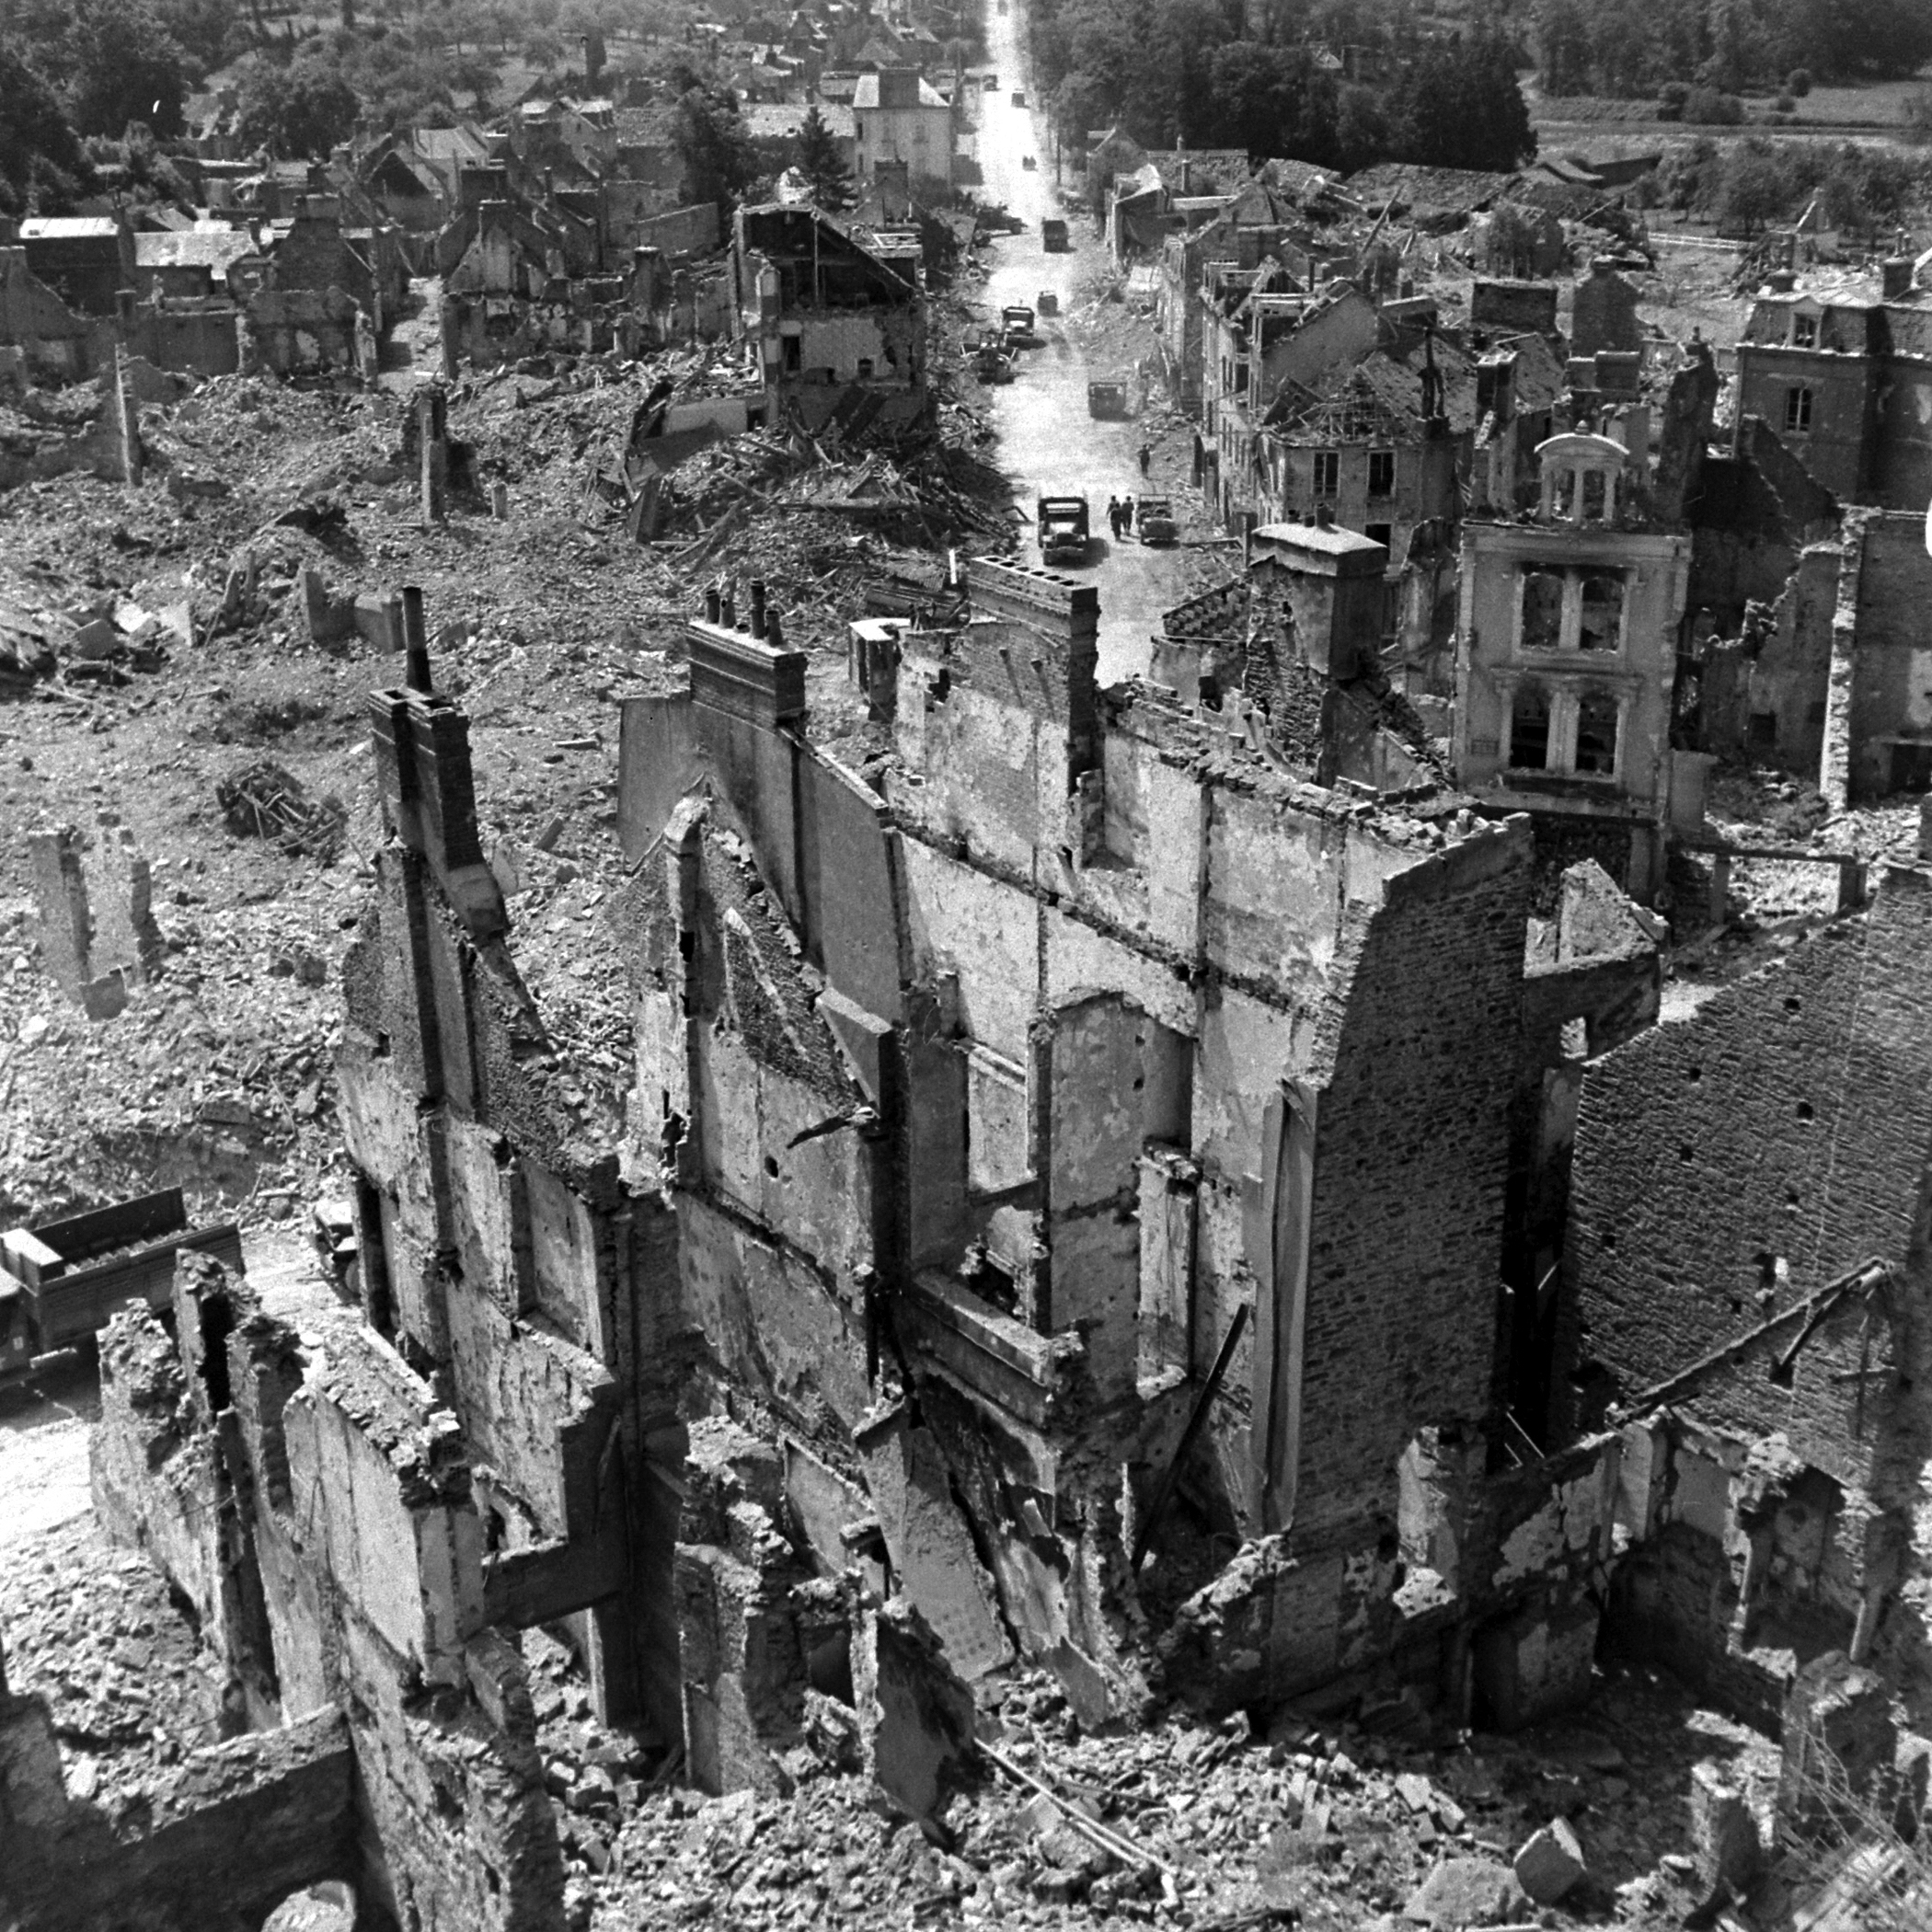 St. Lo, France, summer 1944.